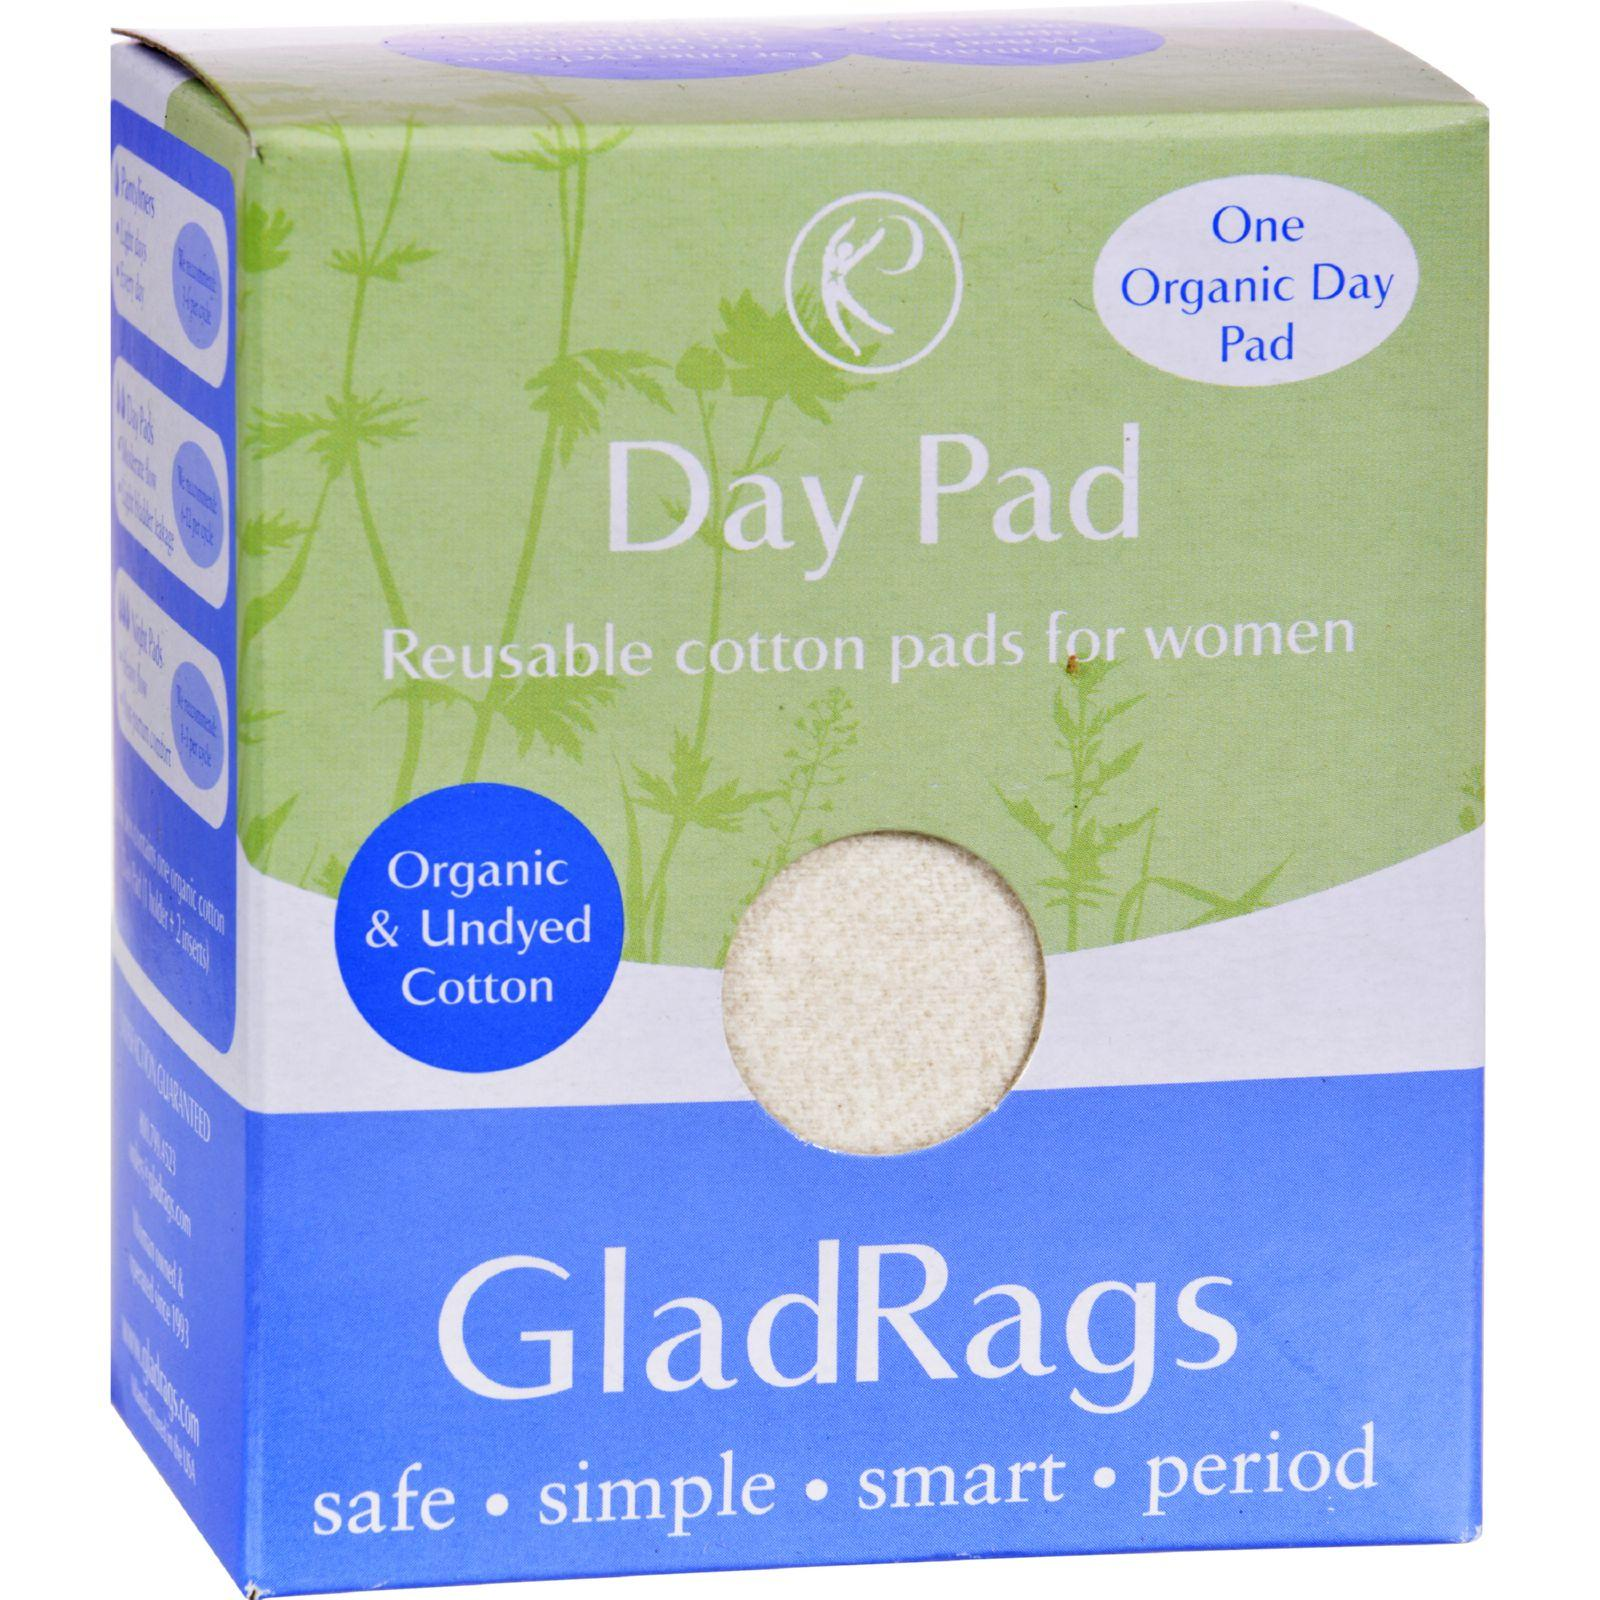 Gladrags Organic Cotton Day Pad - Undyed - 1 Pack (Reusable Sanitary Napkin)